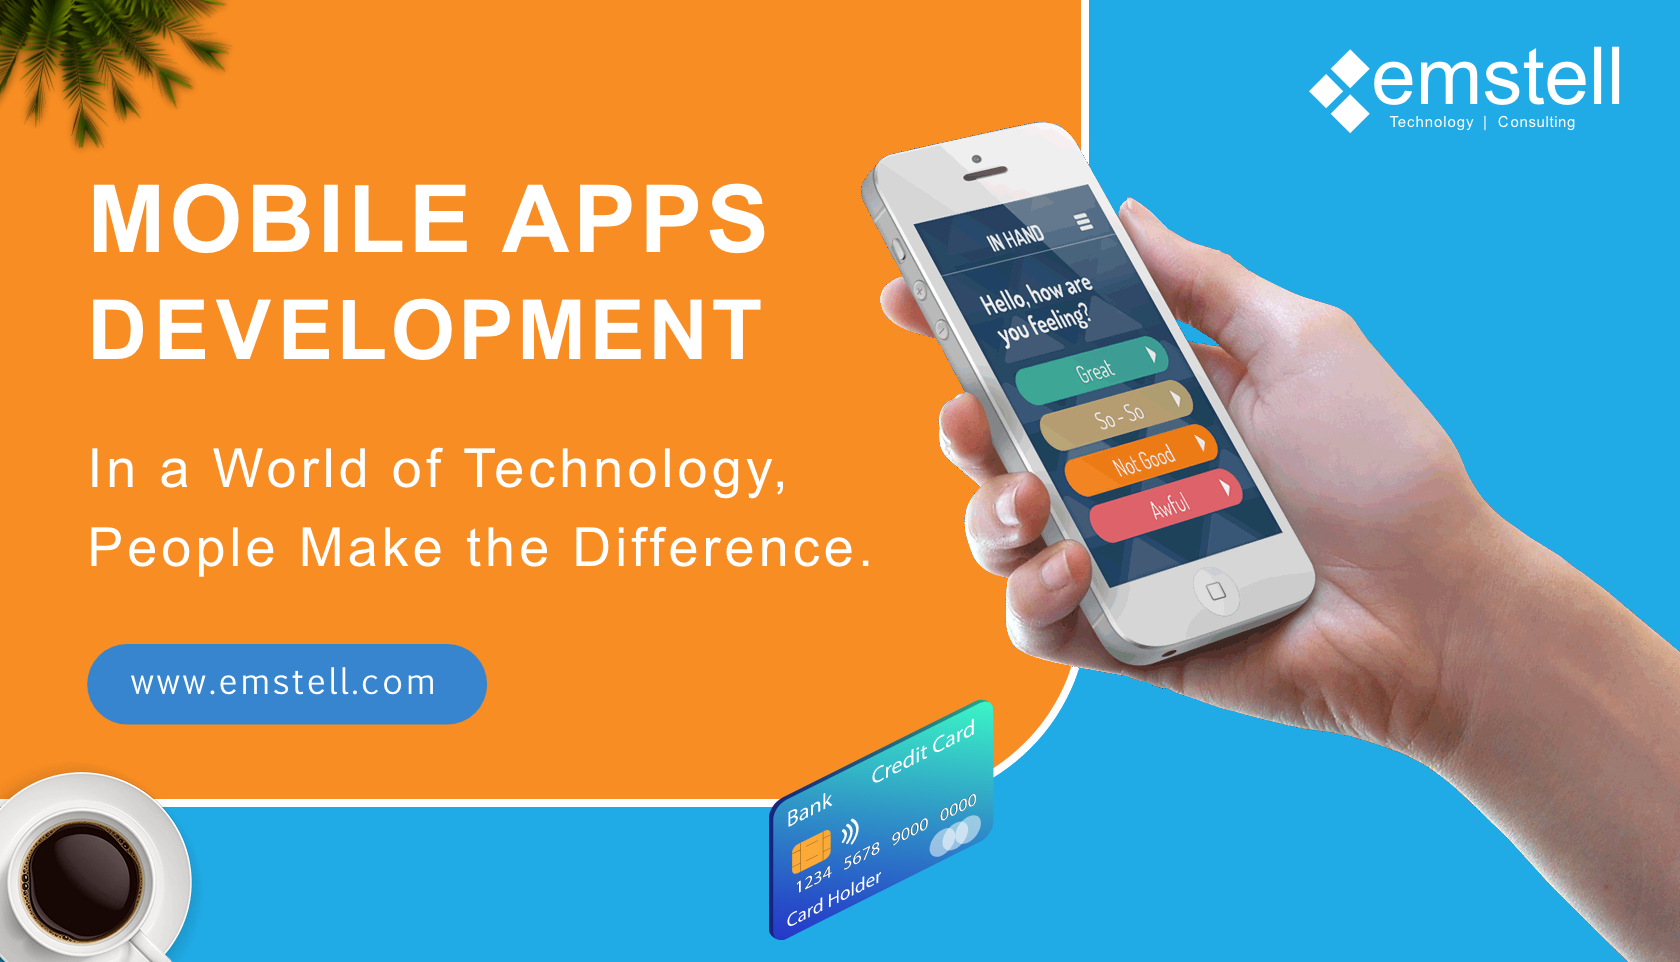 Mobile Applications for All with Emstell Technologies in the Fastest World